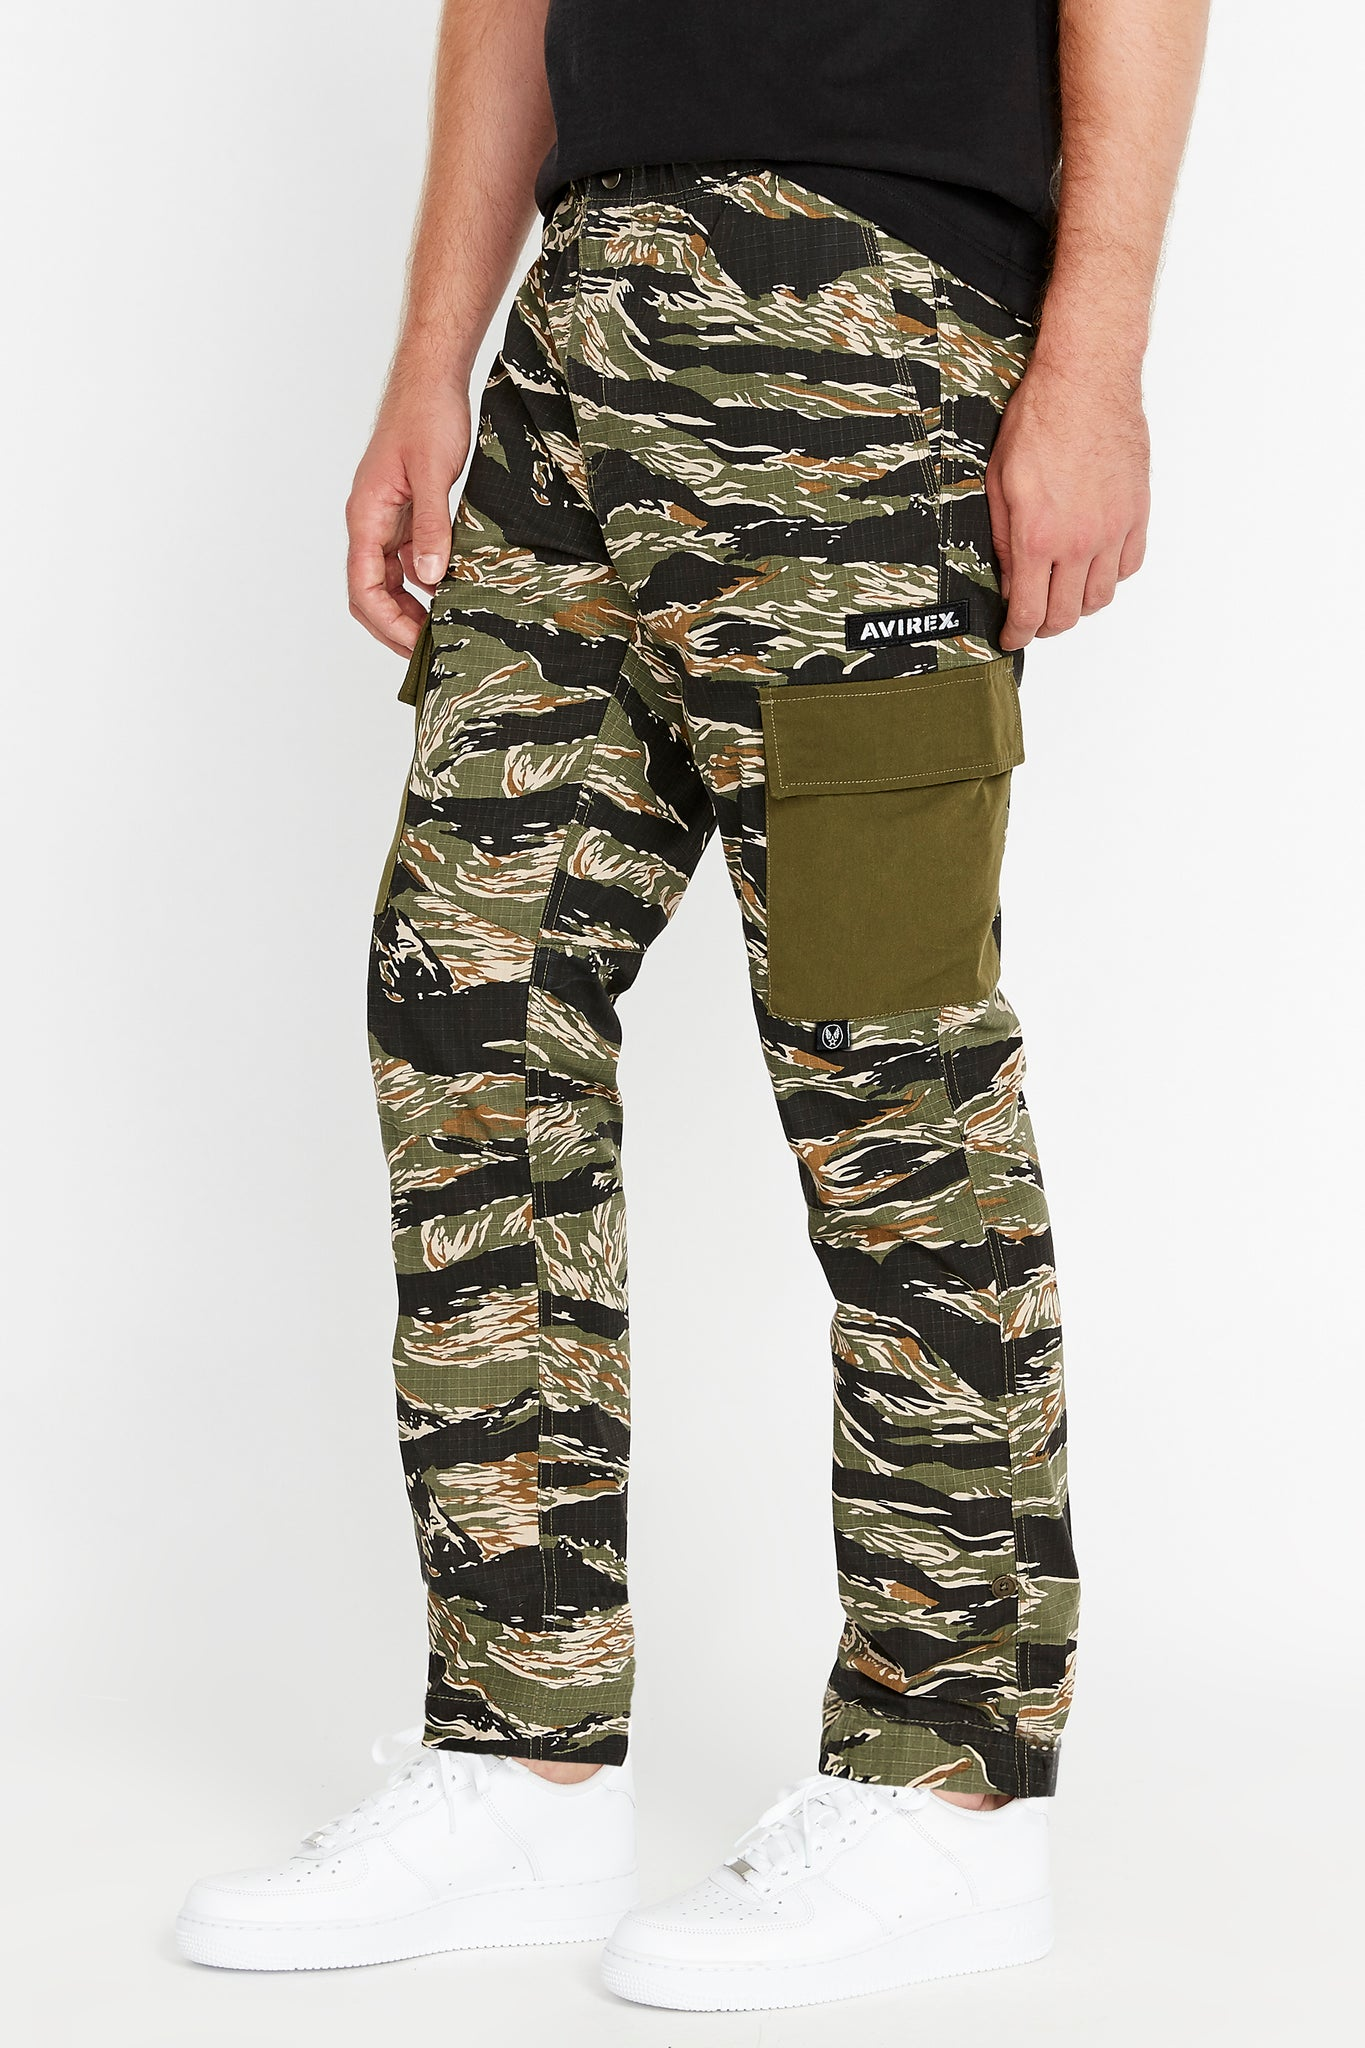 Side view of tigerstripe camo print pants with Avirex patch above side cargo pocket in solid color